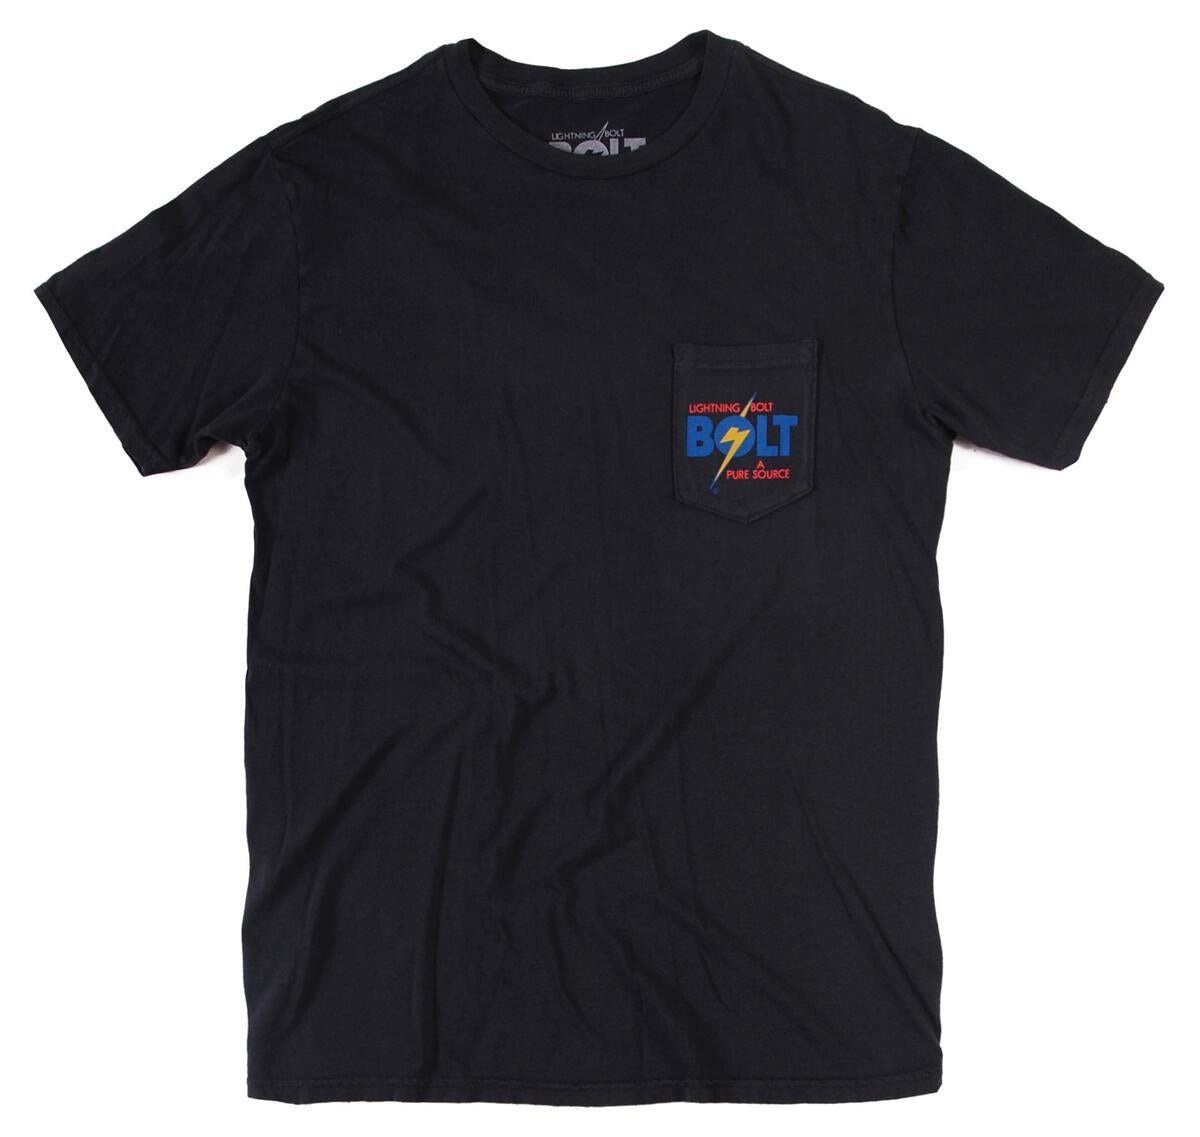 Lightning Bolt The Original Pocket T-shirt - Vintage Black